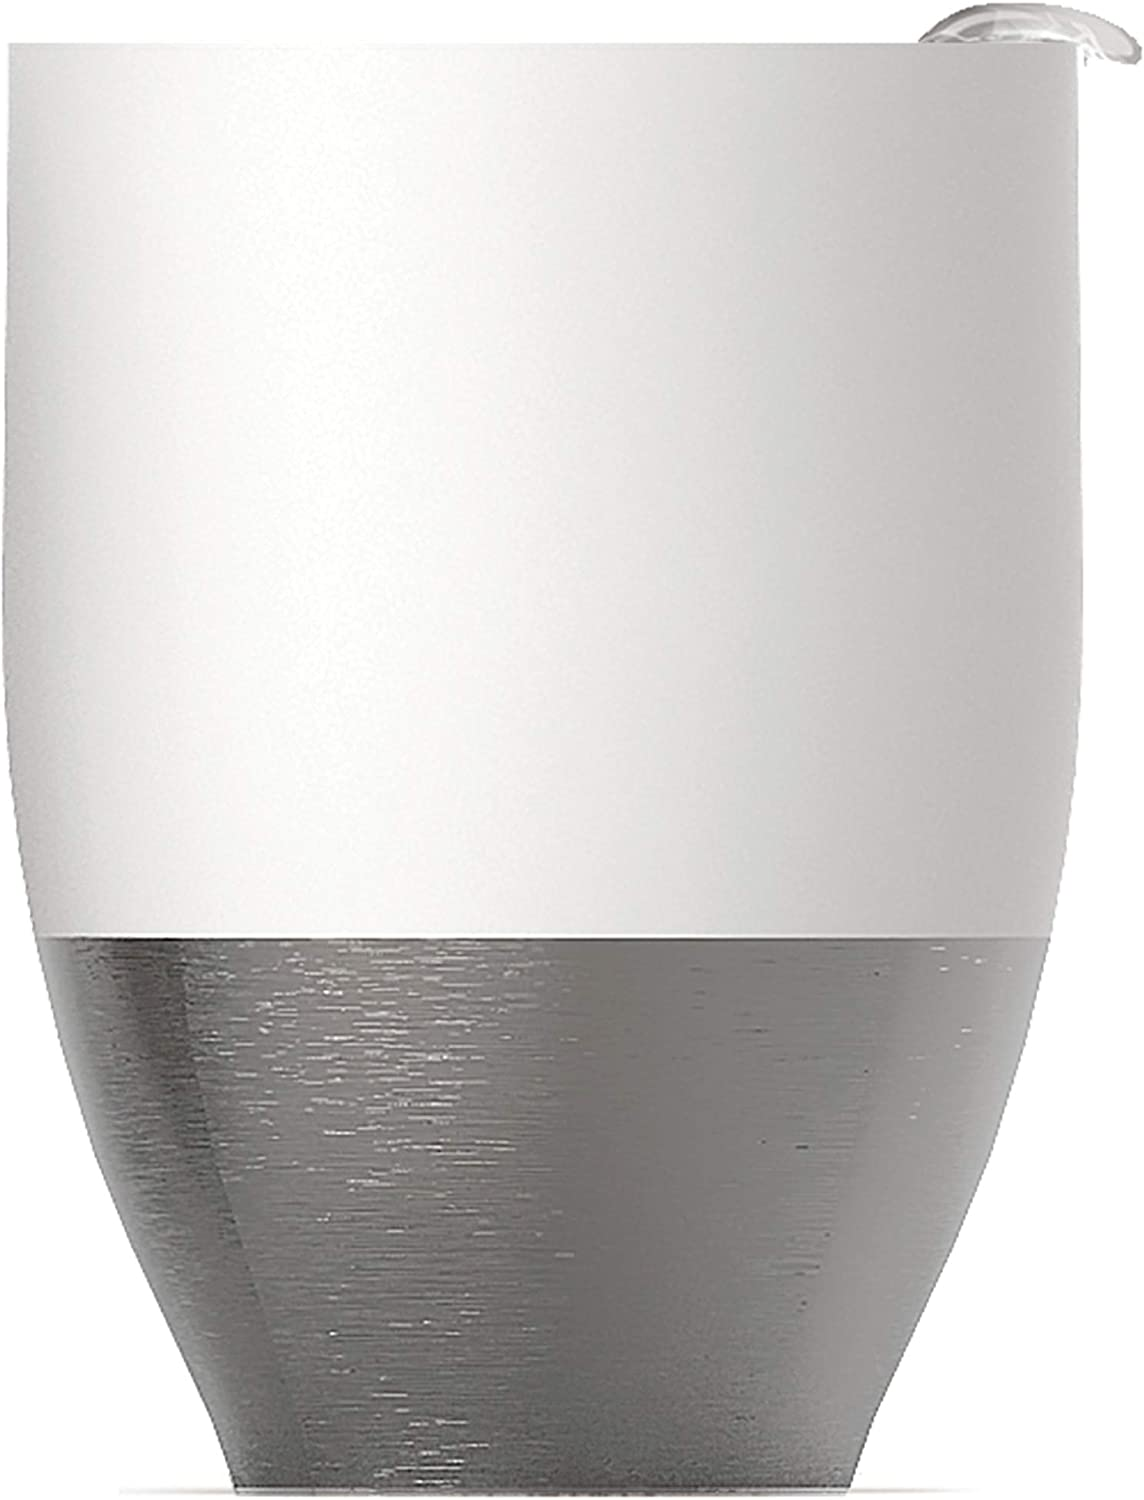 Asobu Imperial Beverage Insulated Cup For Coffee or Tea With Lid 10 Ounce (White)